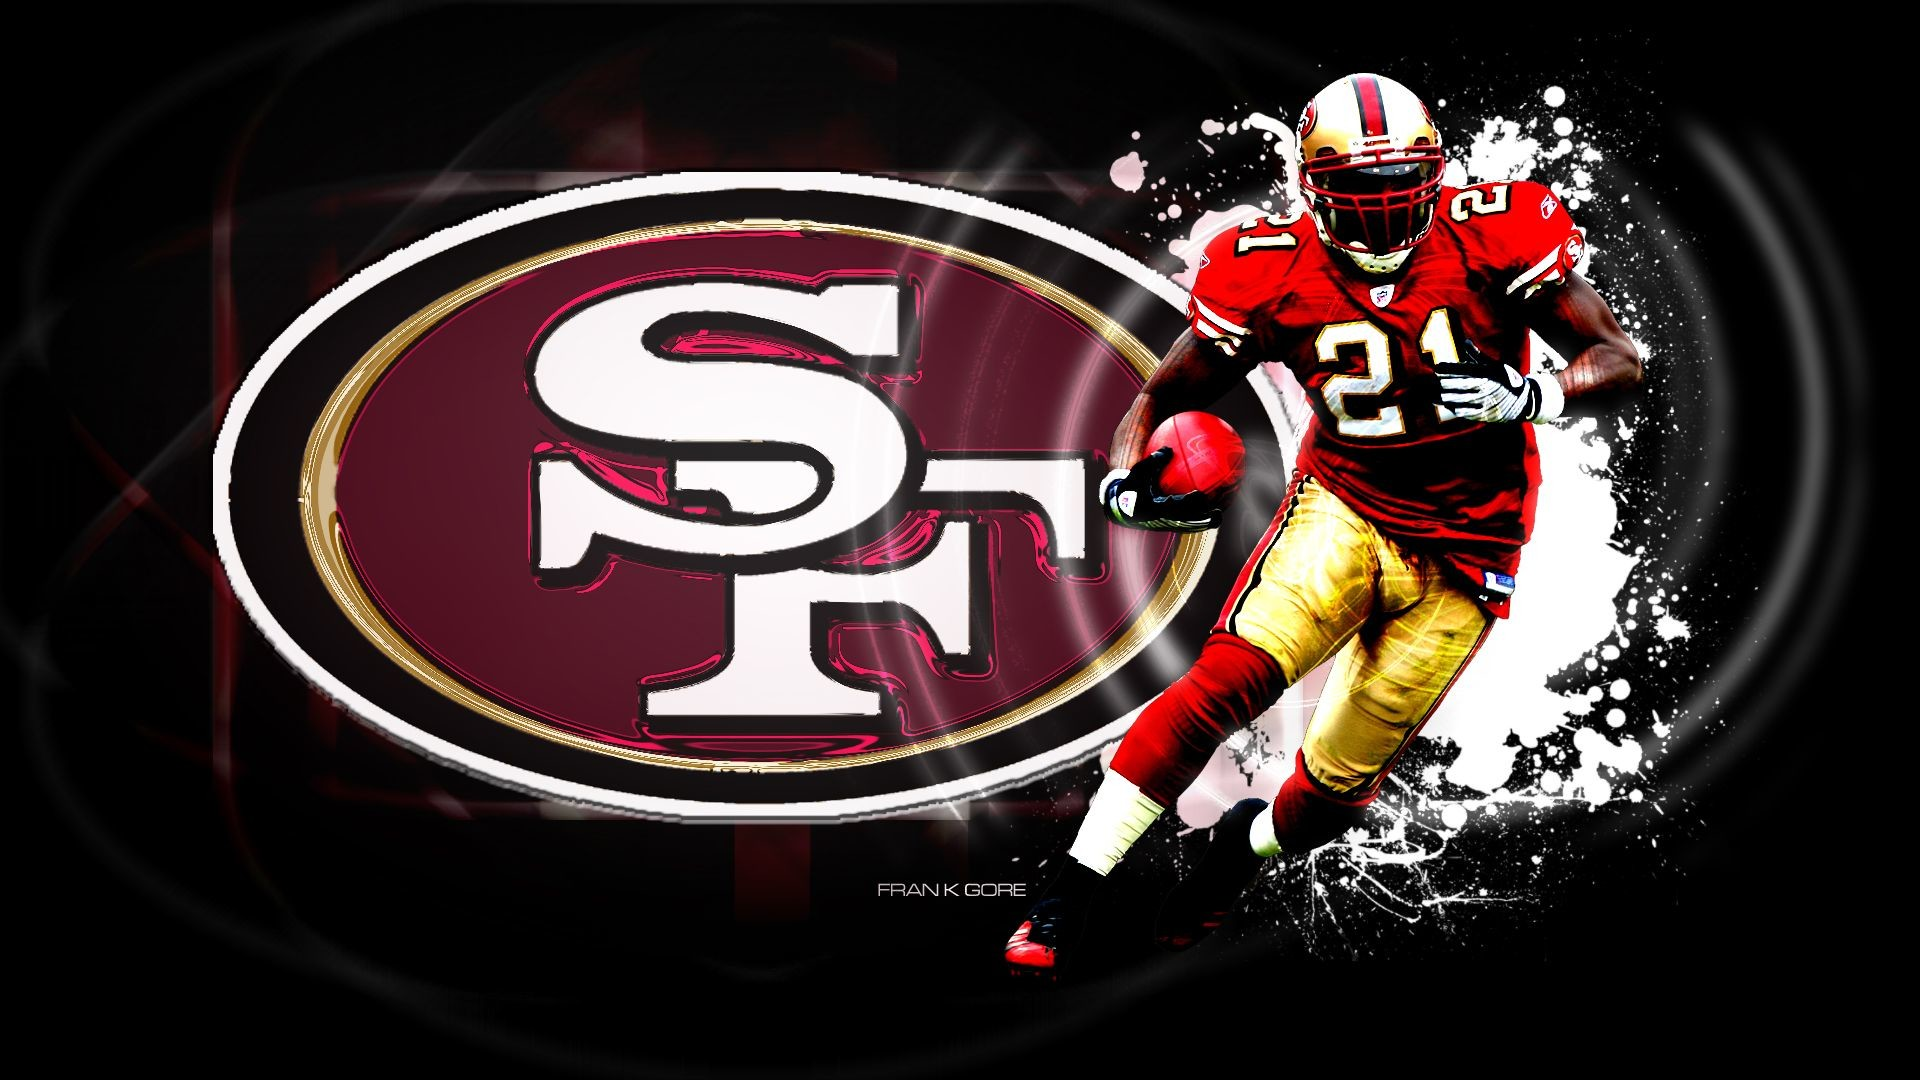 49ers images